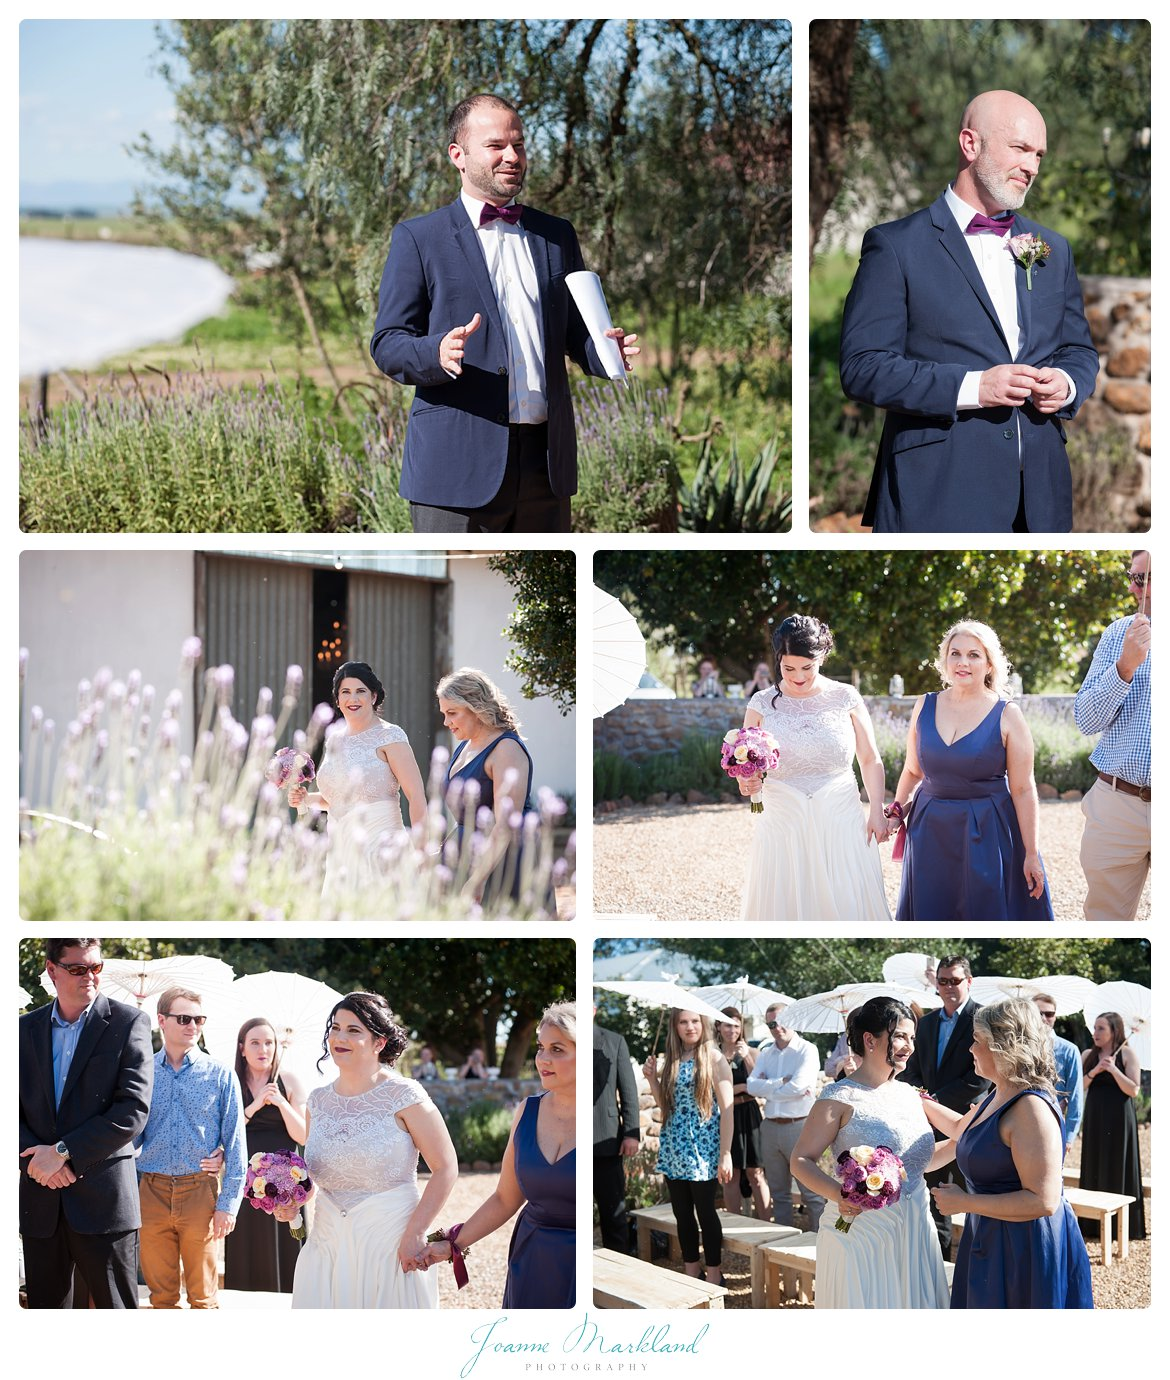 boorwater-wedding-hopefield-west-coast-cape-town-joanne-markland-photography-019